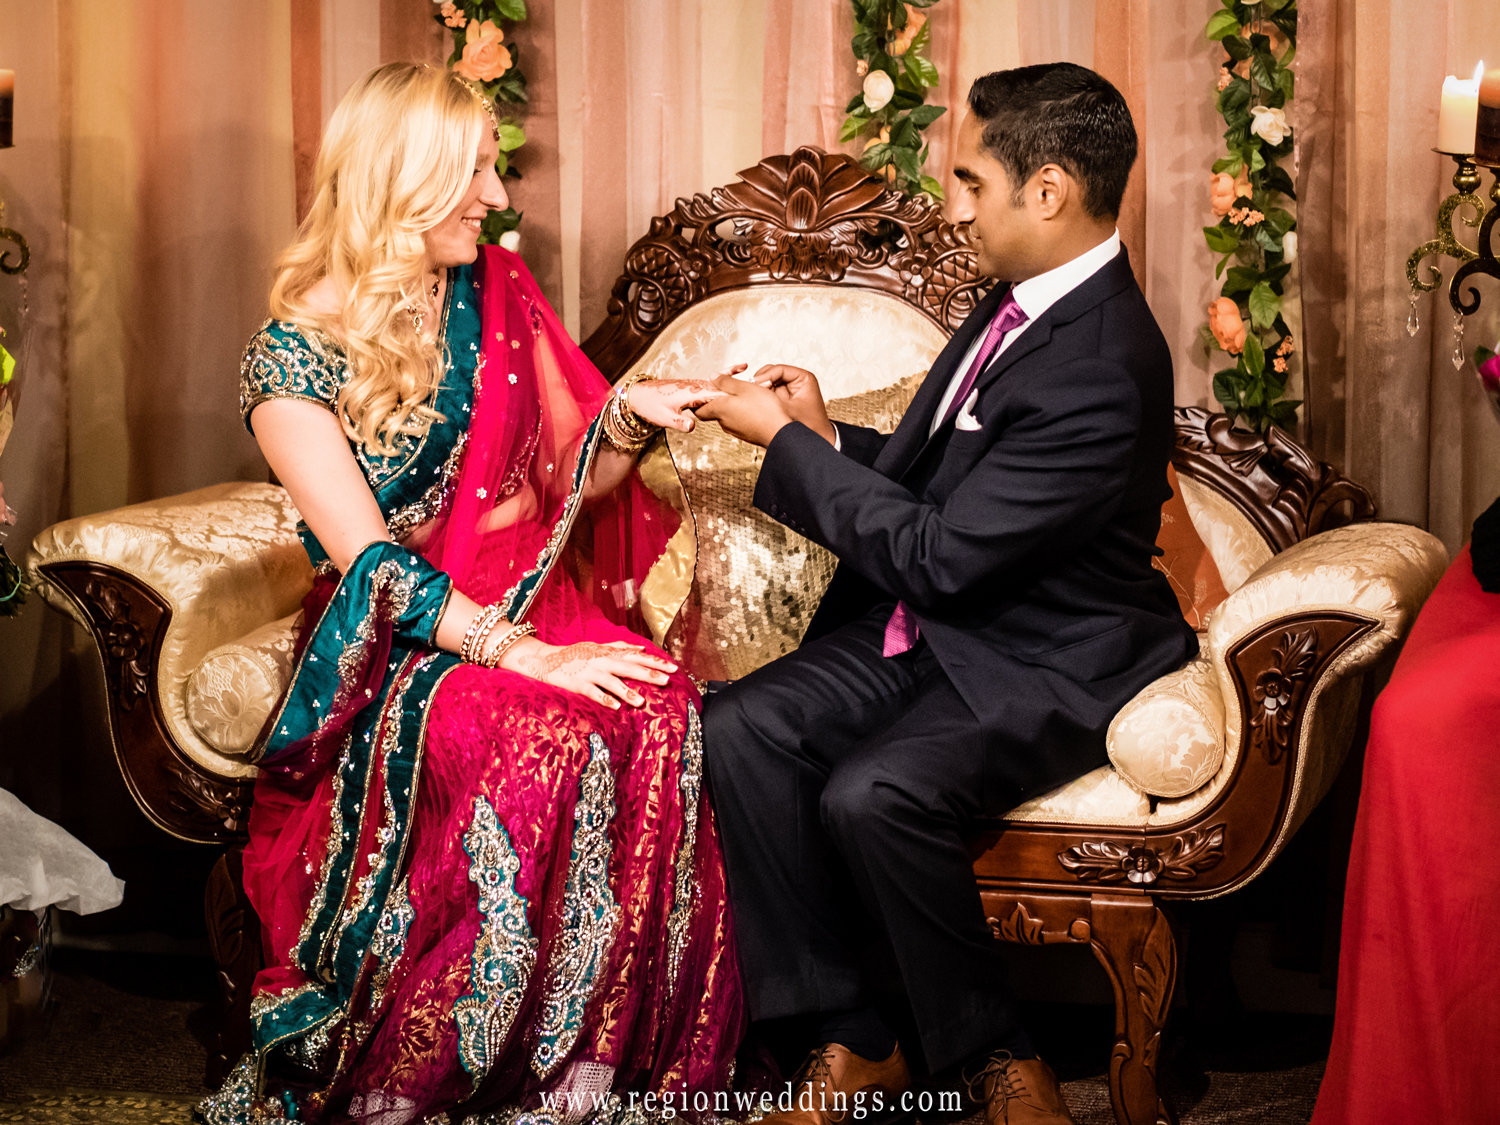 Exchanging of the rings at an Indiana American engagement ceremony.